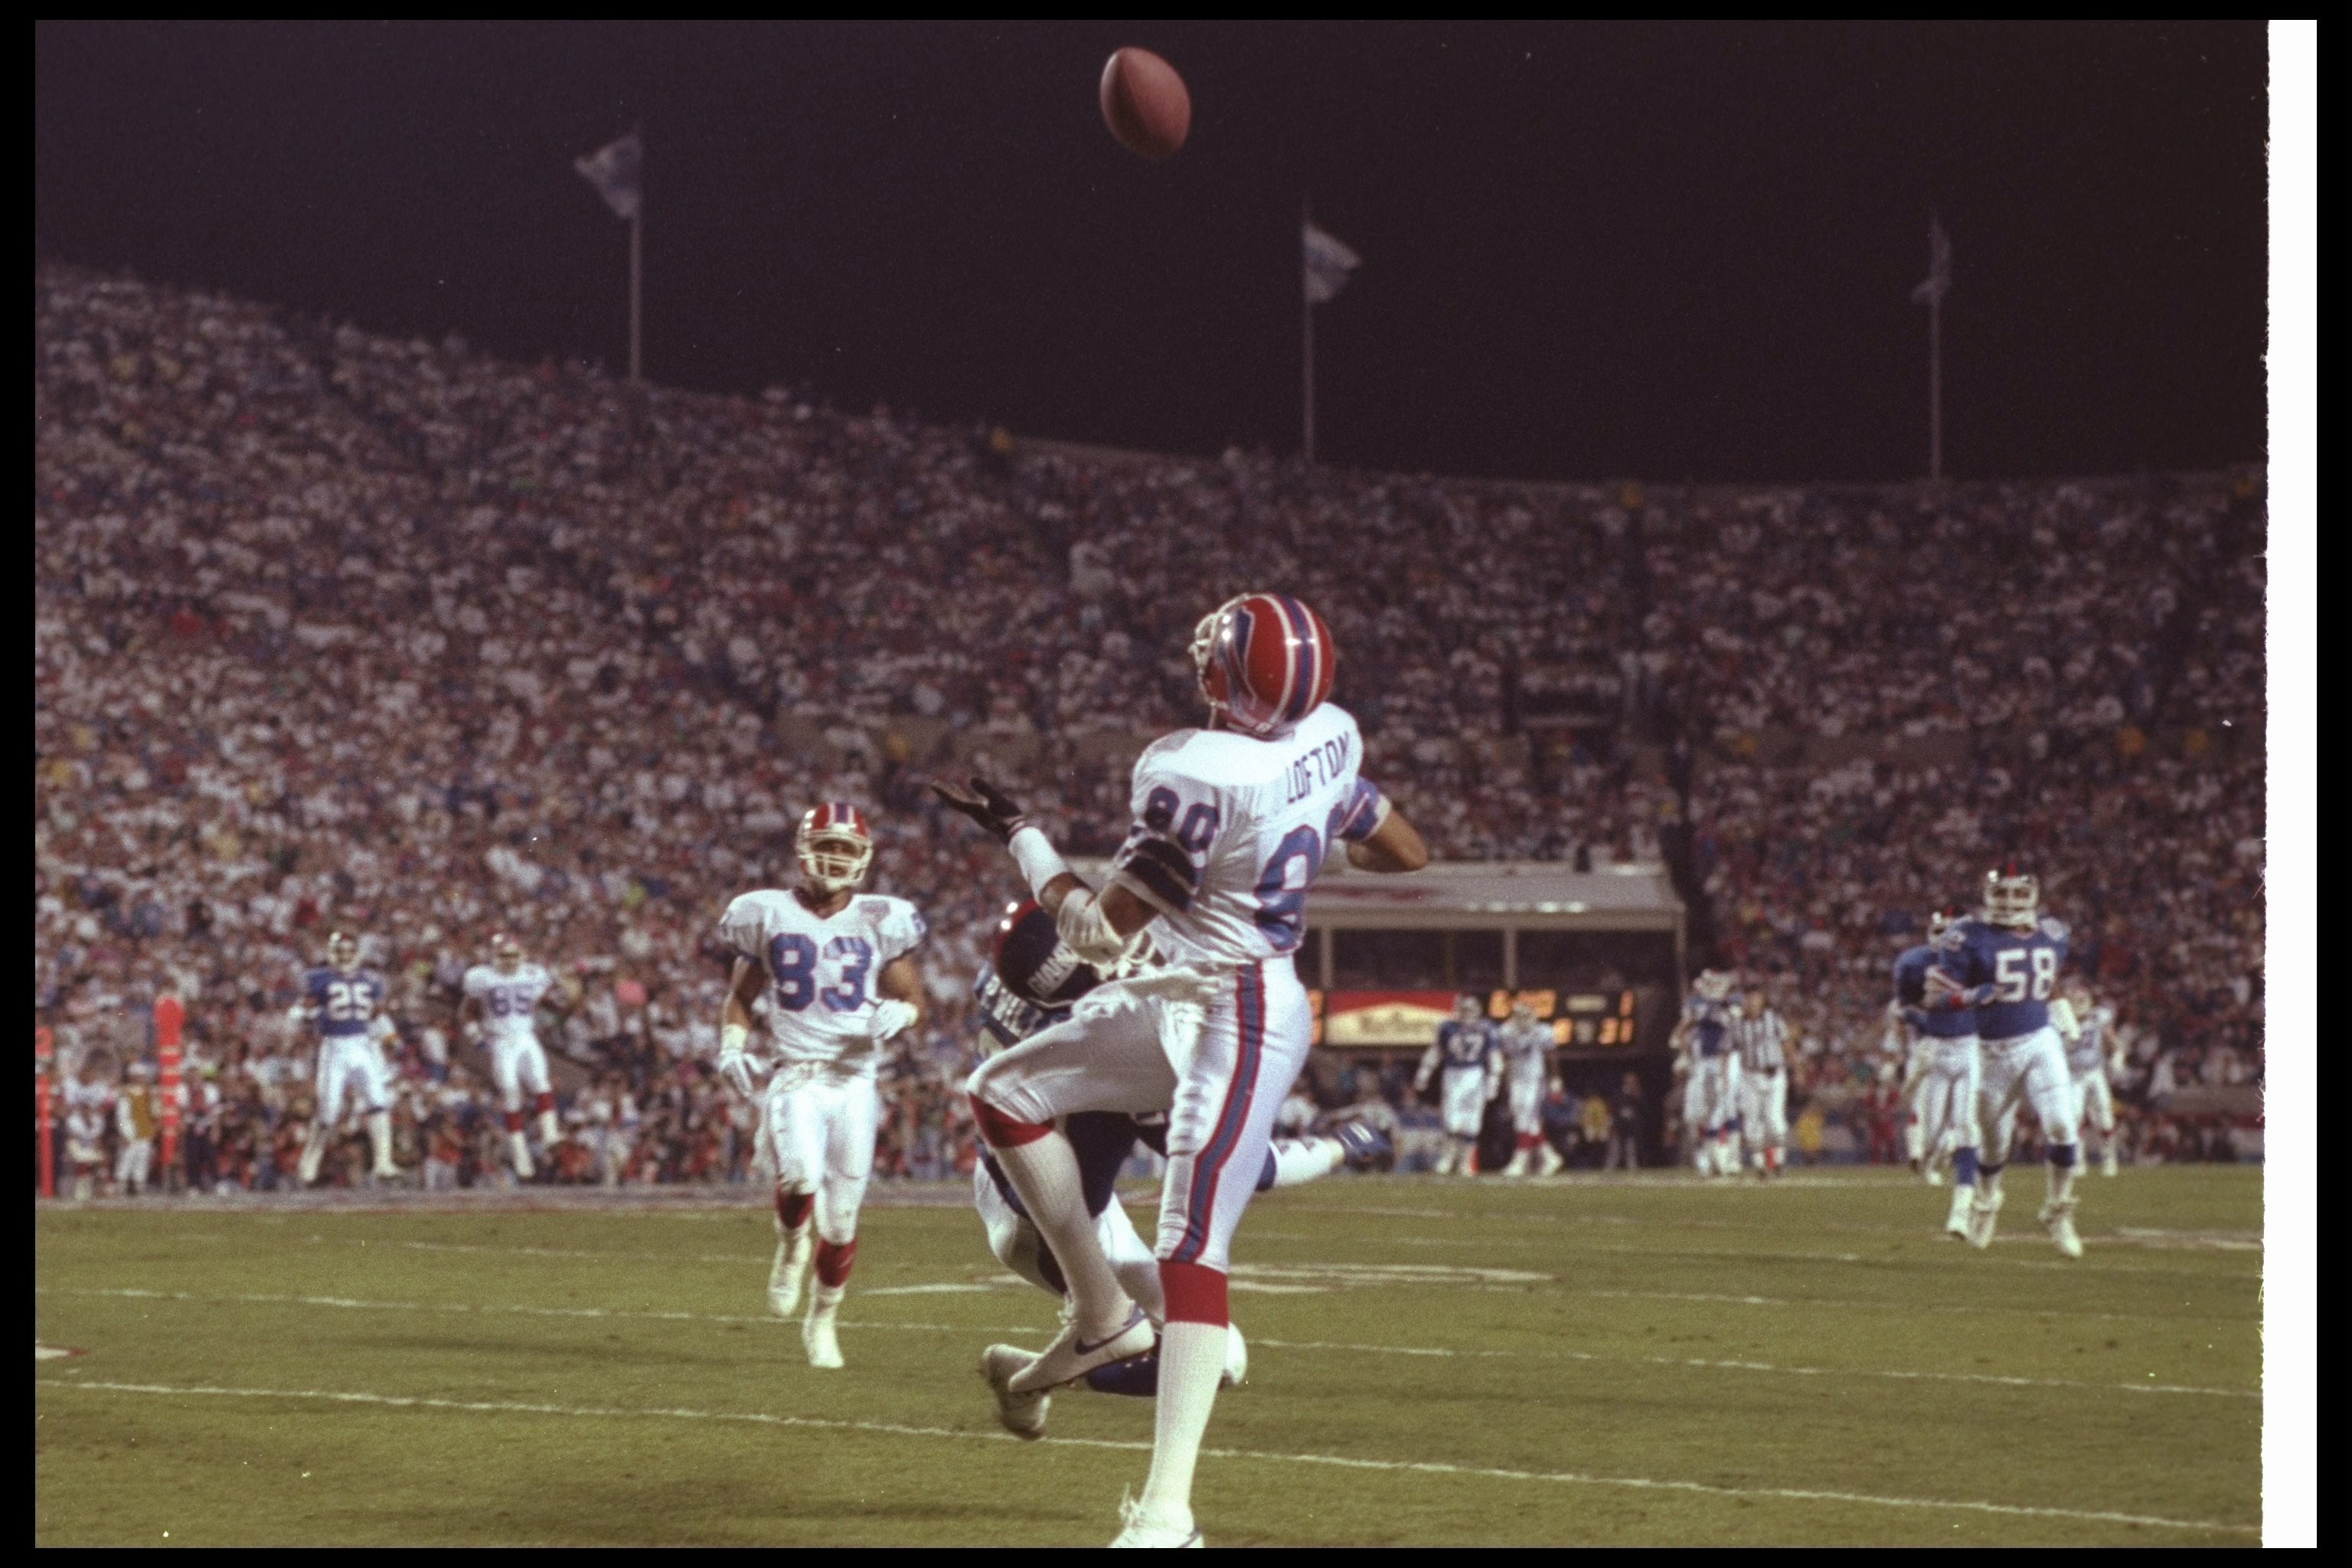 12 Jan 1991: Wide receiver James Lofton of the Buffalo Bills looks for the ball during Super Bowl XXV against the New York Giants at Tampa Stadium in Tampa, Florida. The Giants won the game, 20-19.